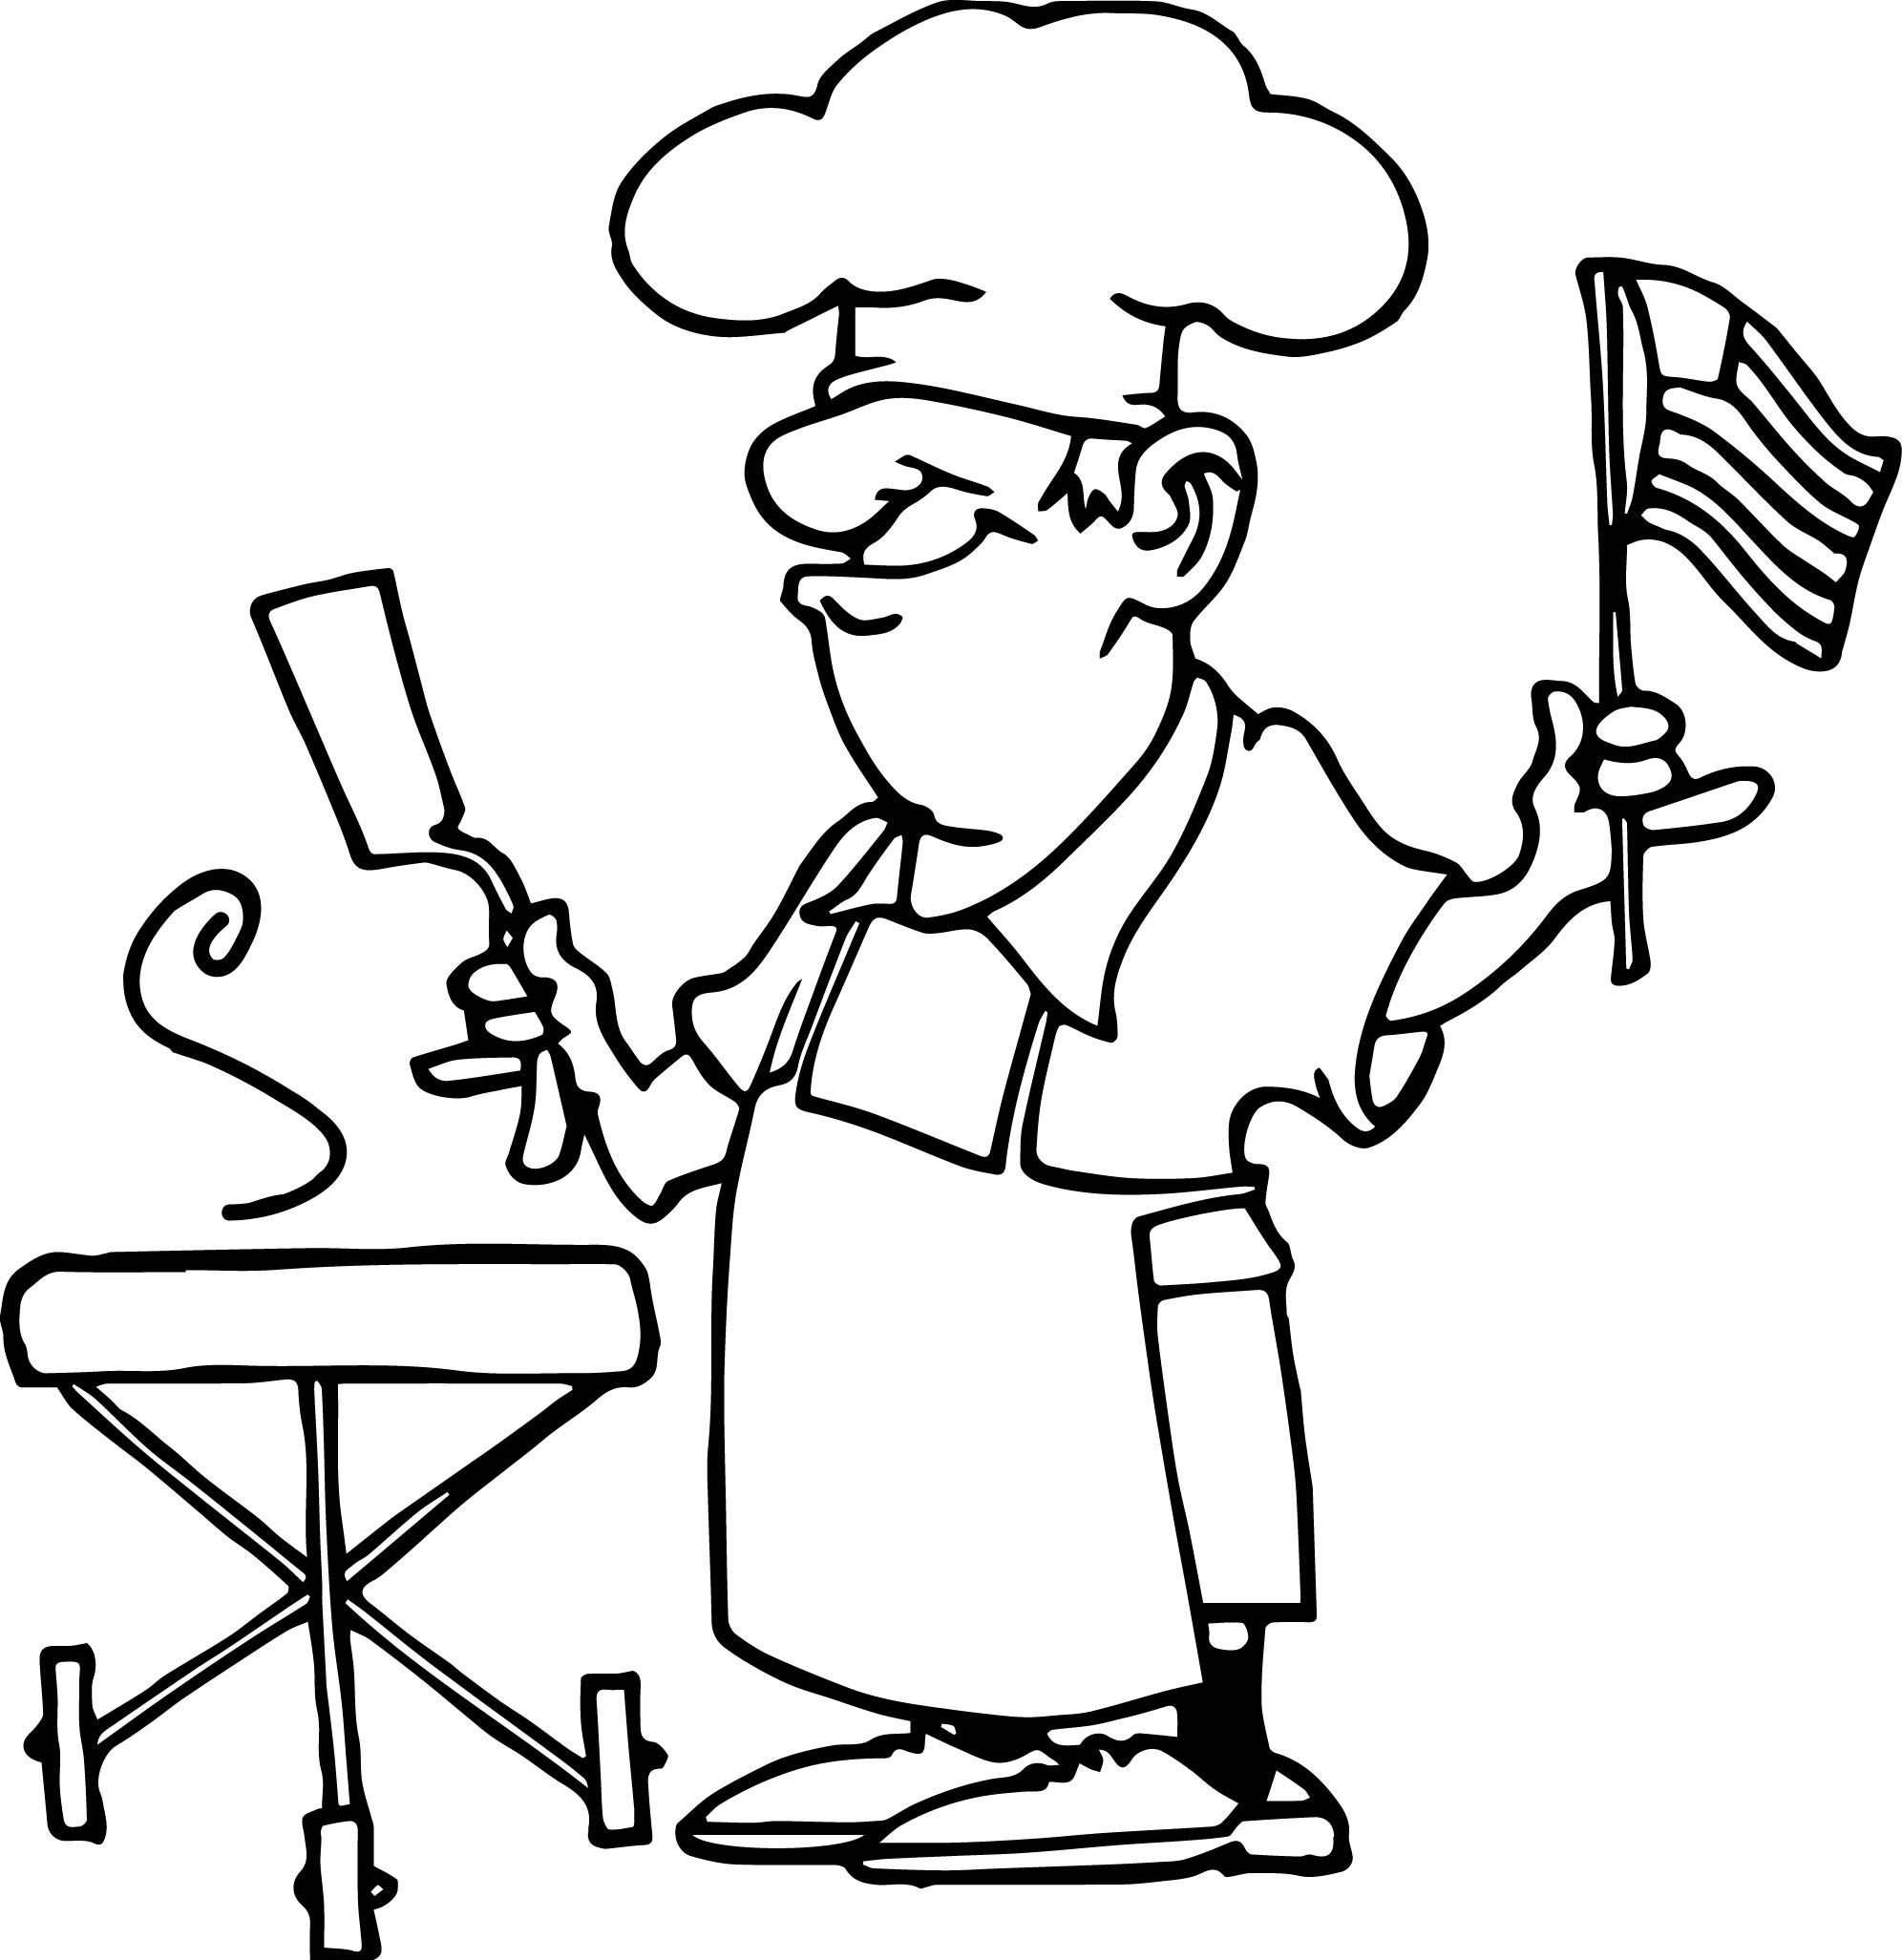 Food 4th July Coloring Page